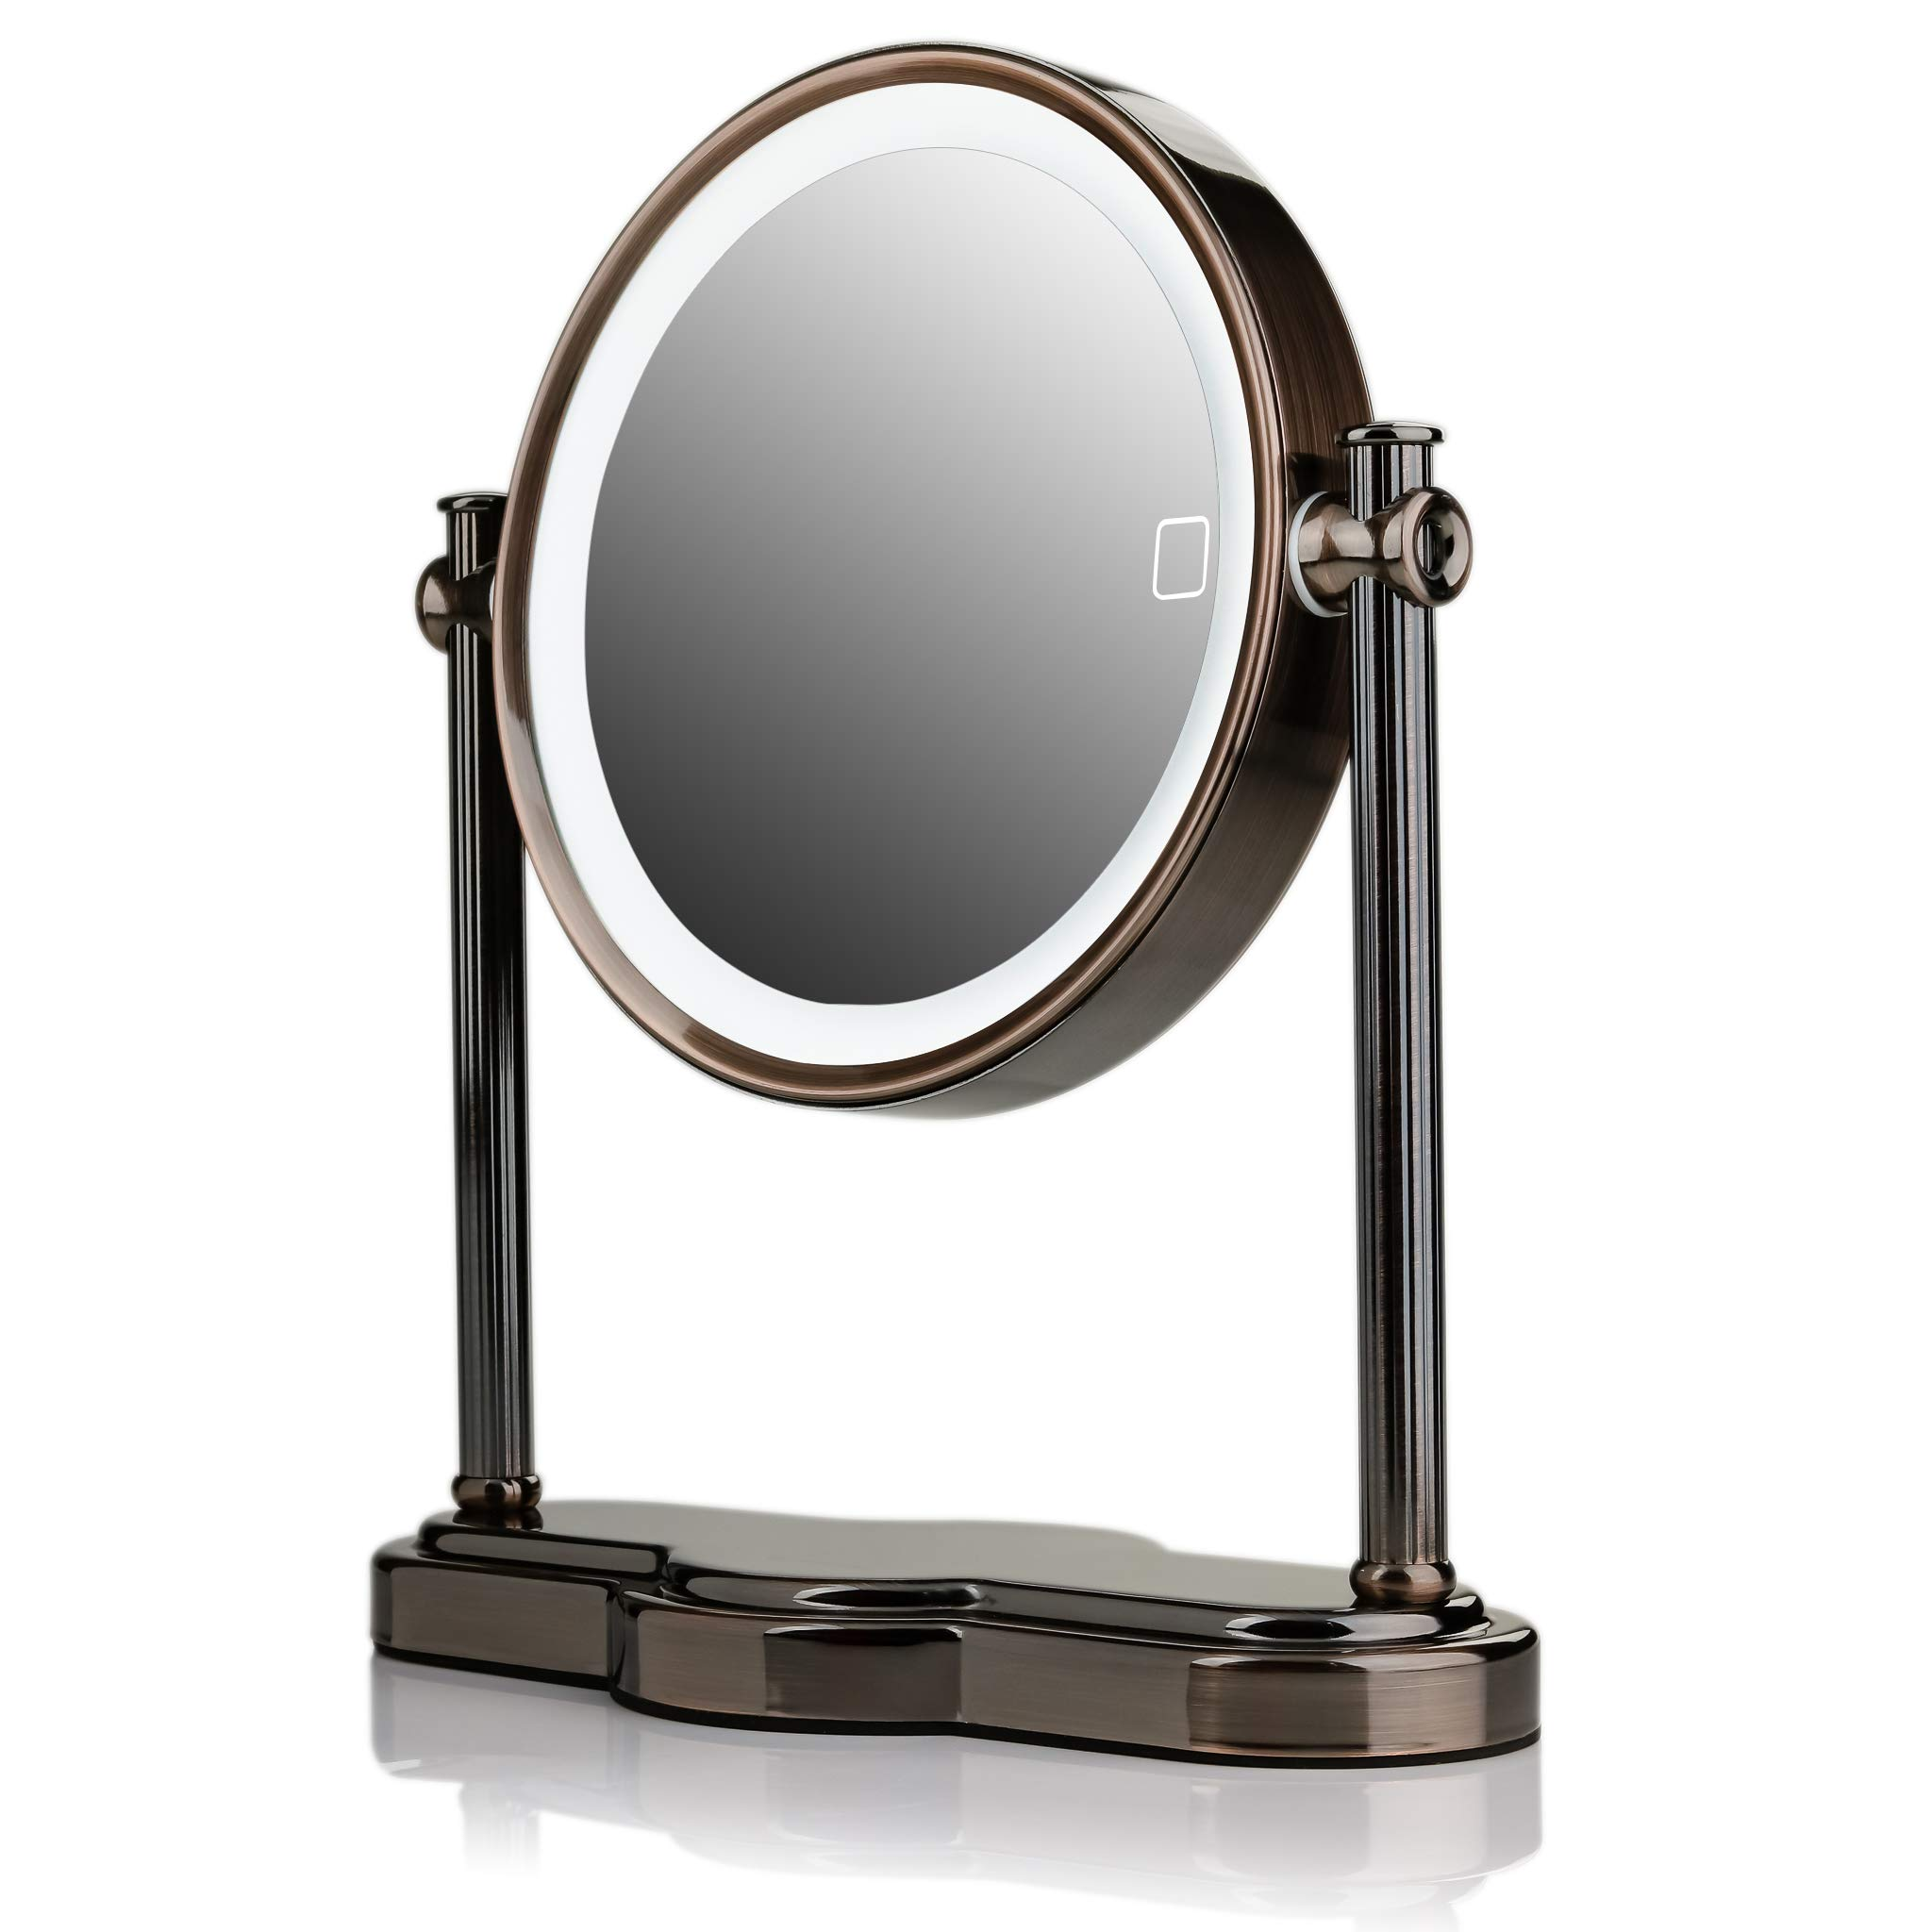 Ovente LED Lighted Makeup Mirror, SmartTouch 3-Tone Lighting (Daylight, Cool, Warm), Tabletop Vanity Mirror, Battery or USB Adapter Operated, 1x/10x Magnification, 8'', Antique Brass (MHT80AB1X10X) by Ovente